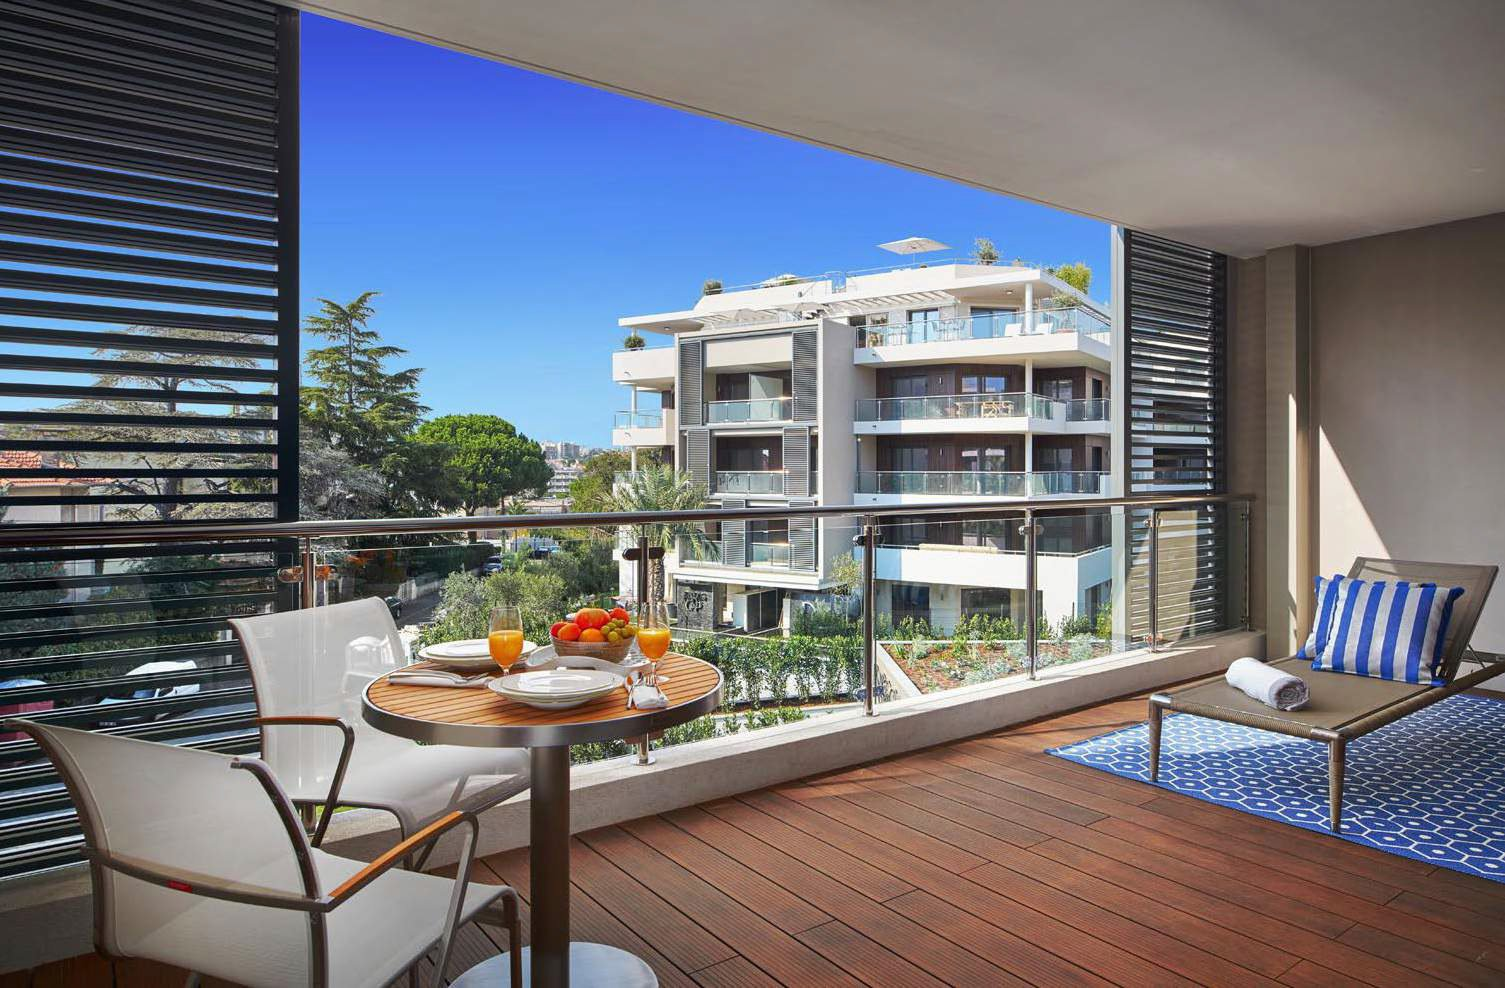 2 bedroom in new luxury residence - 5 minutes from the beach